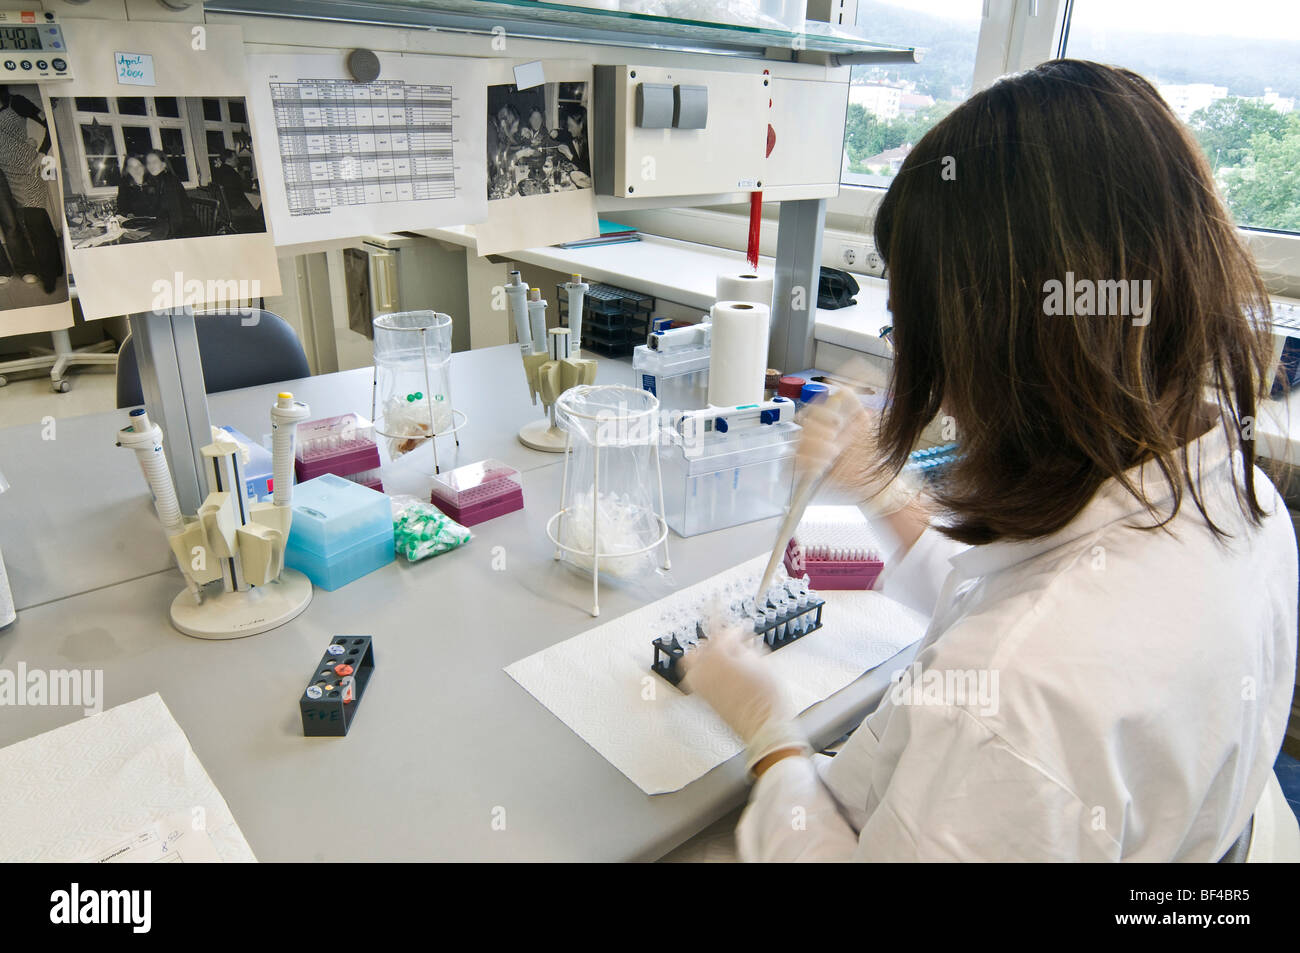 Chemist in a laboratory - Stock Image